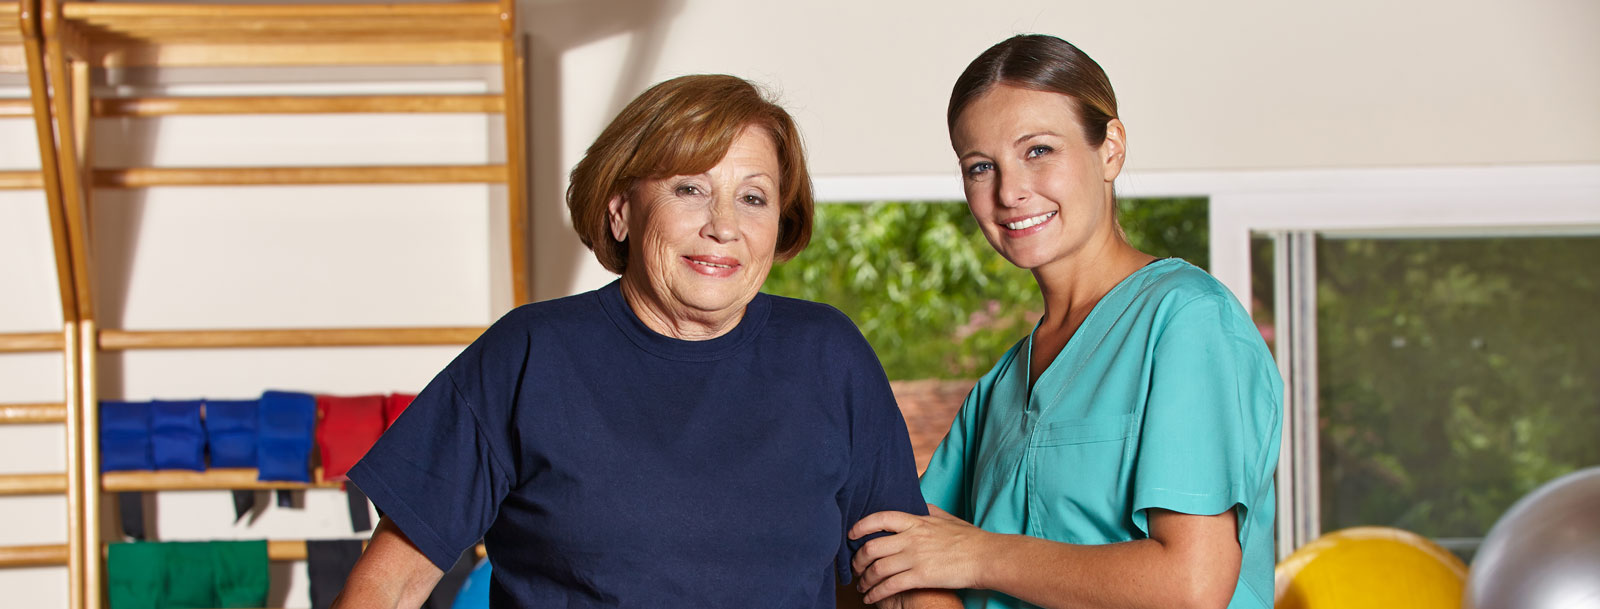 Orthopedic services at the senior living facility in Emporia